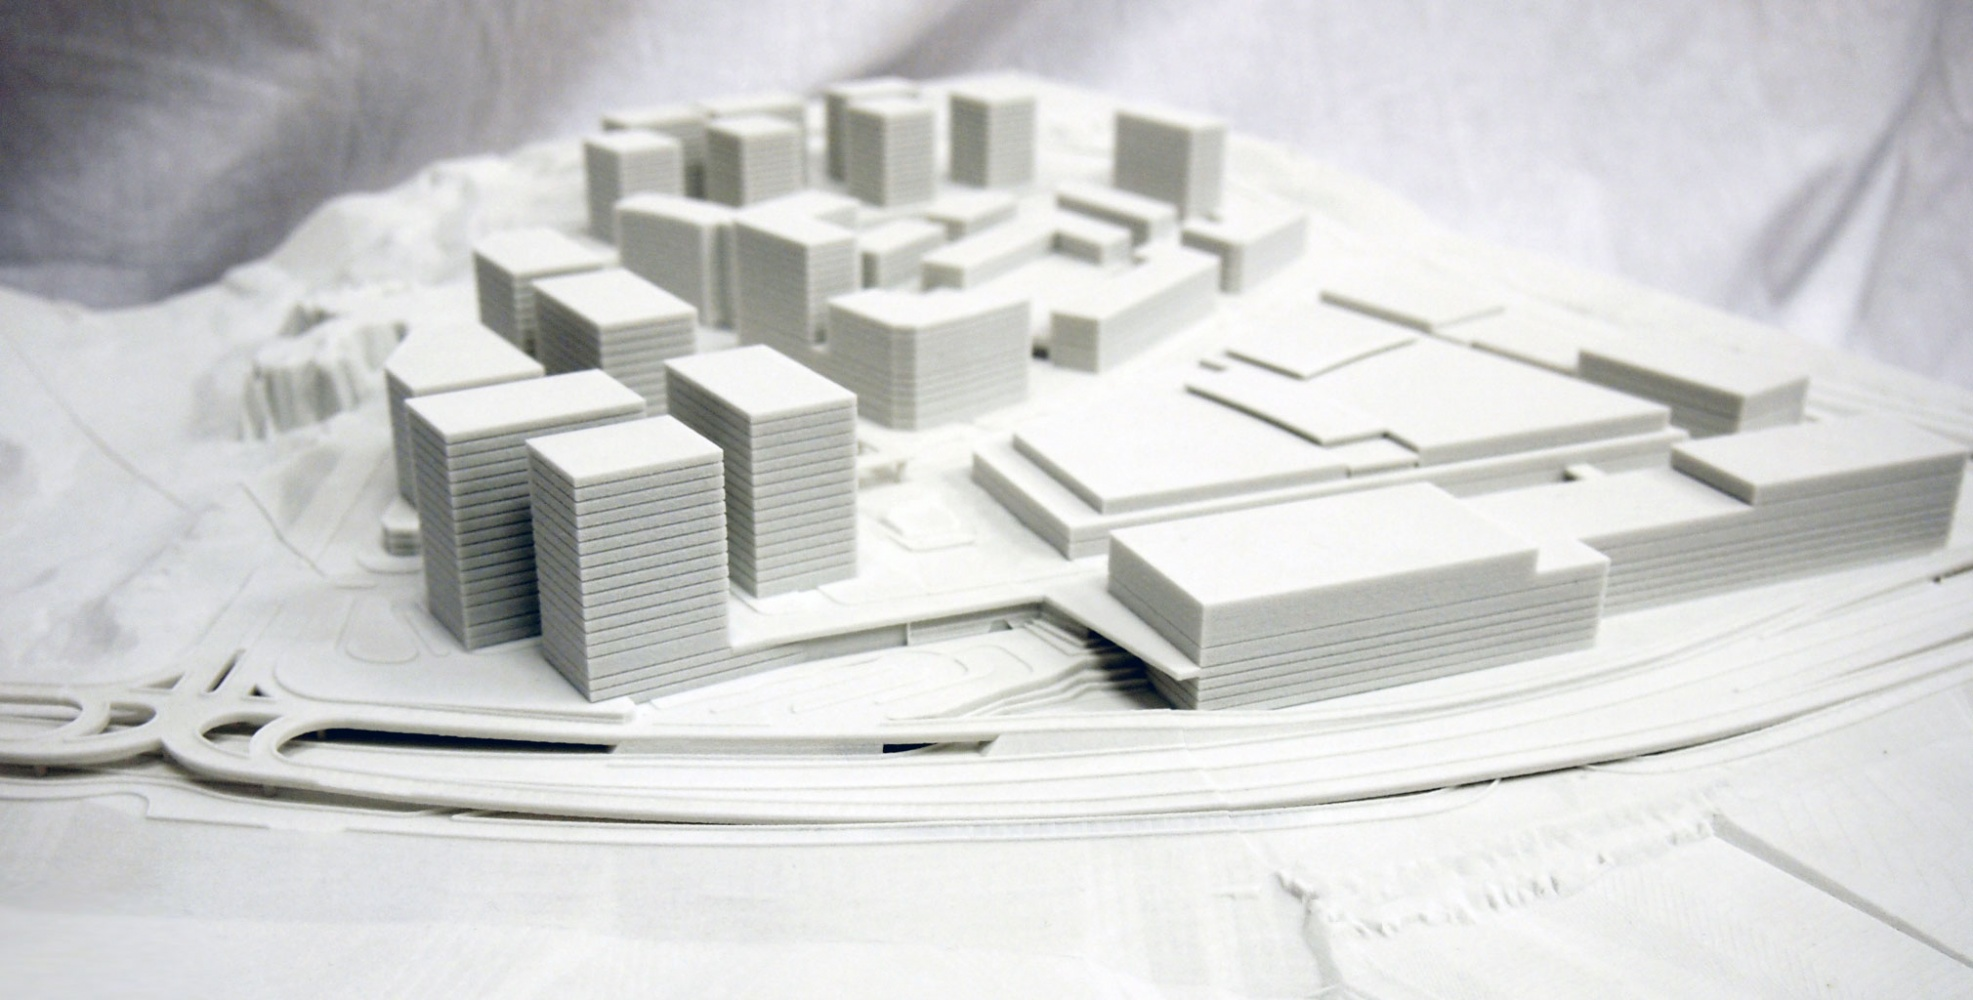 Architectural 3D Print from SketchUp Model